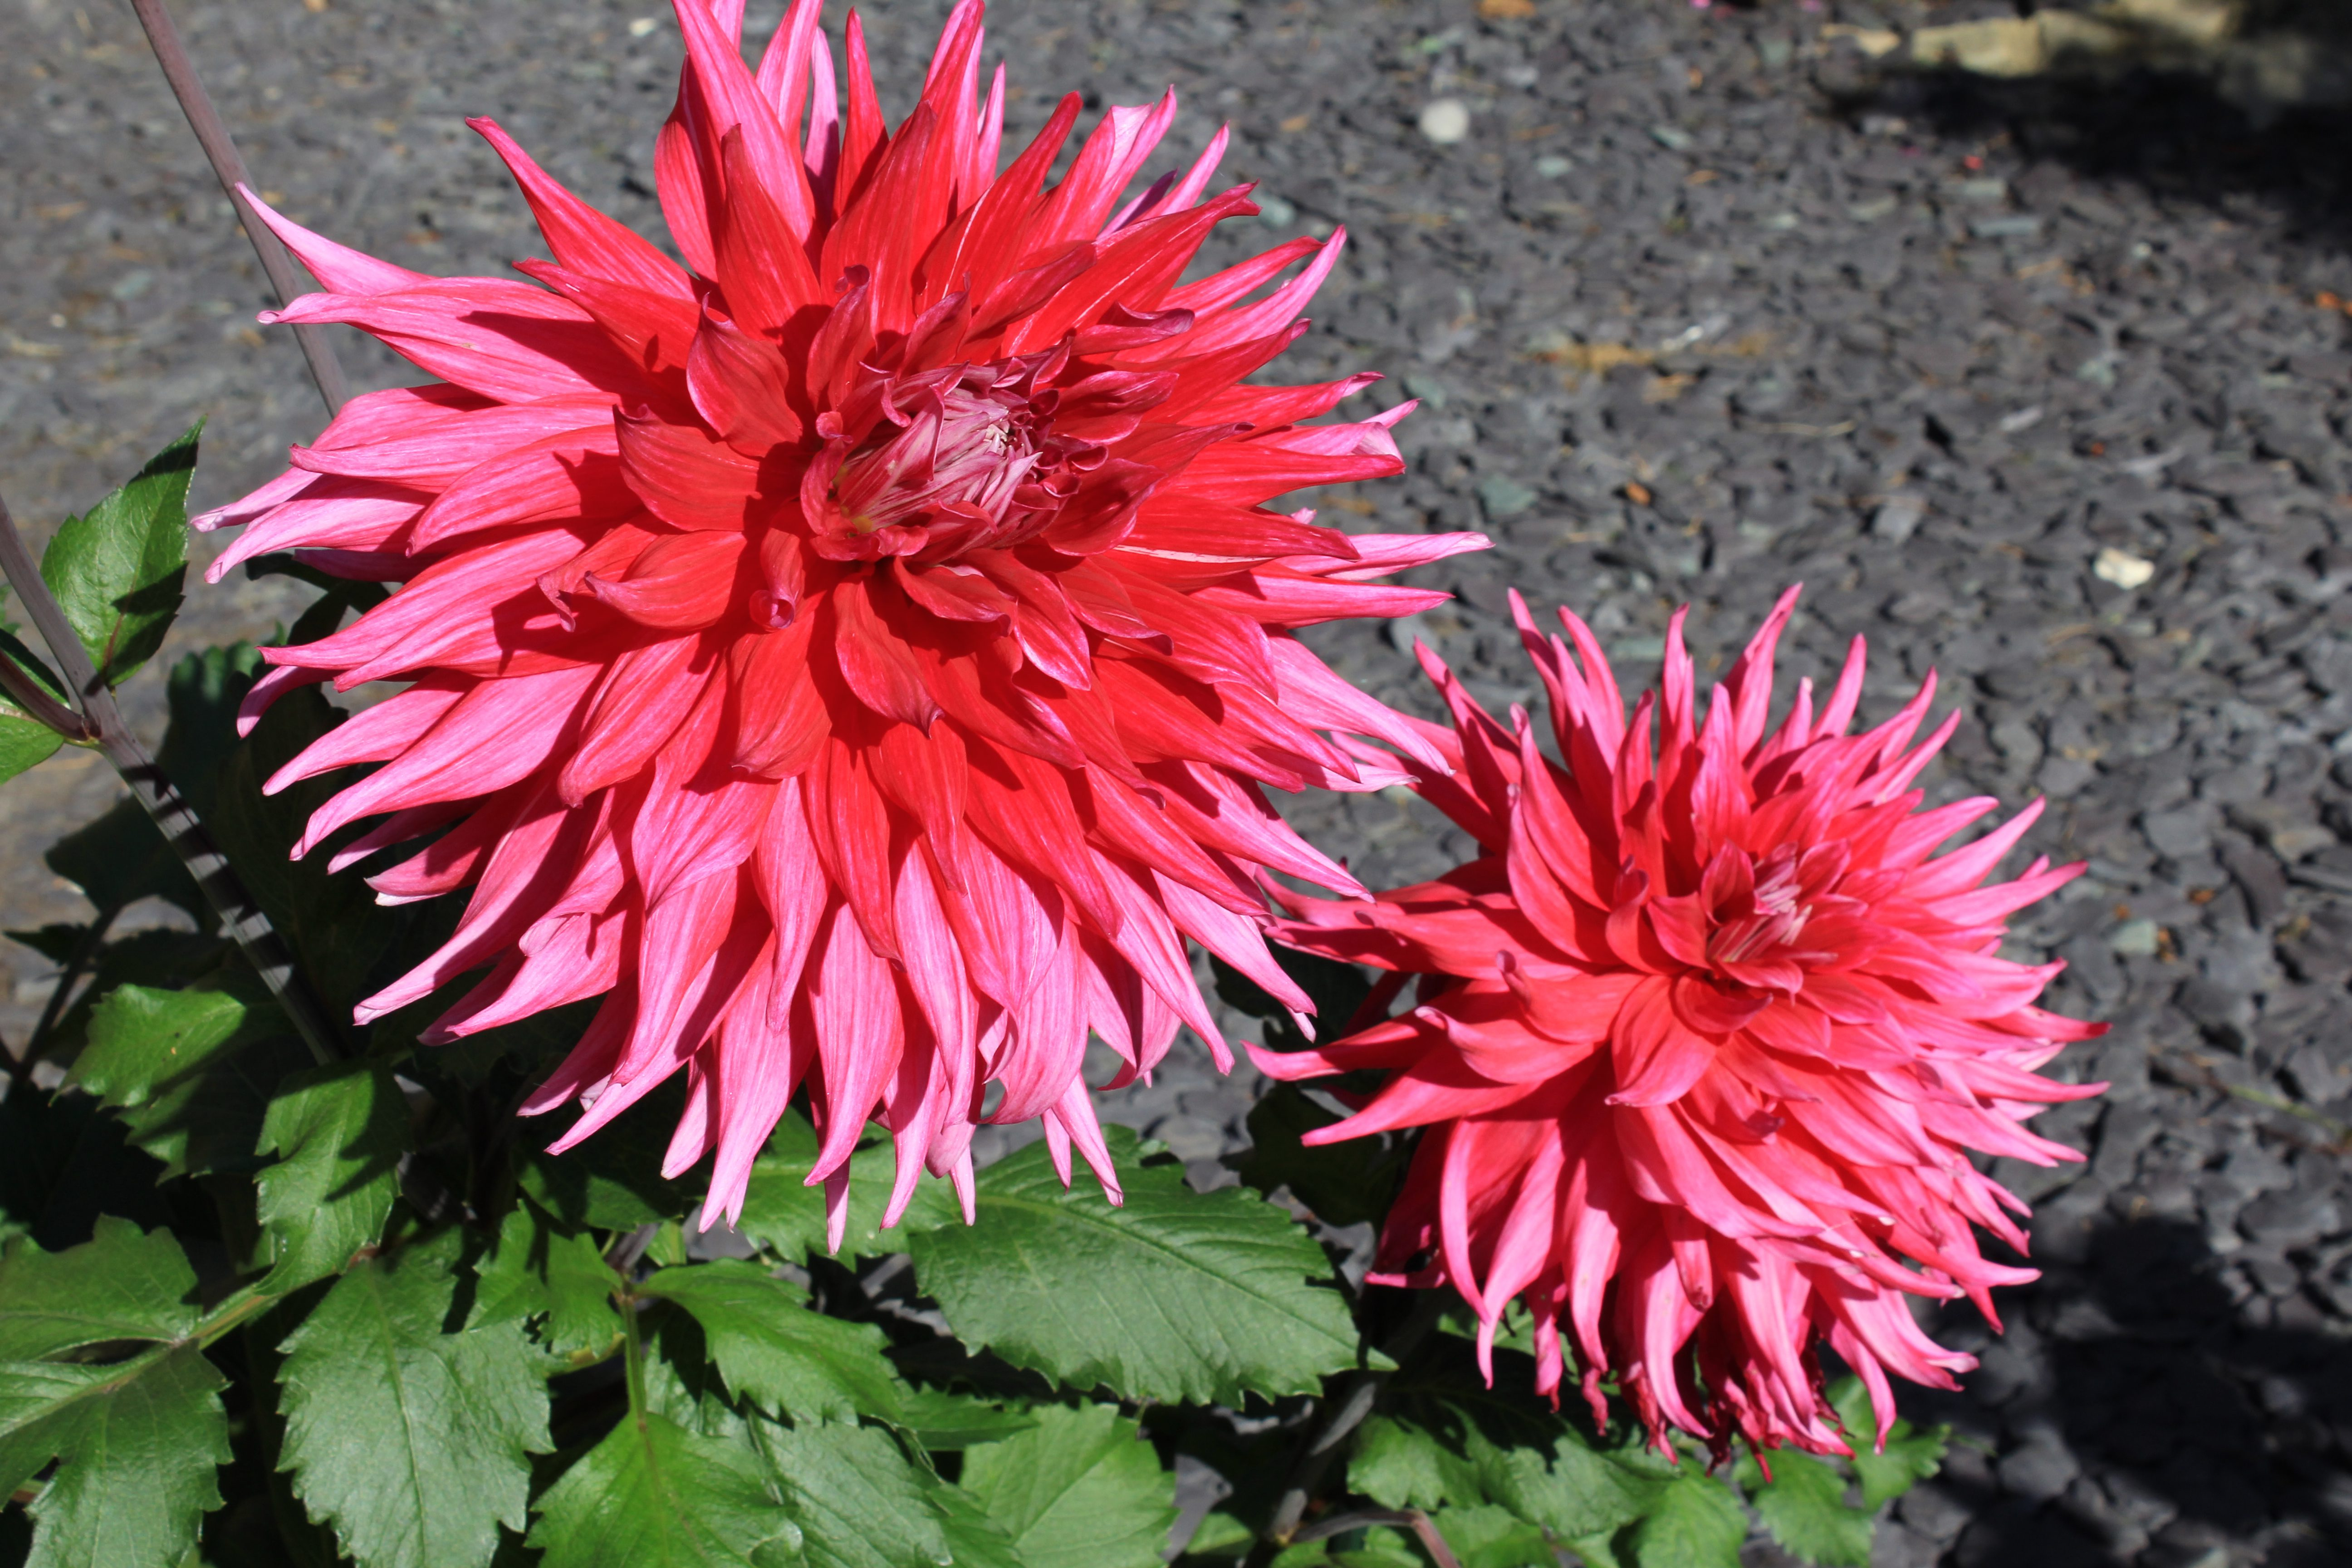 Red and pink dahlia